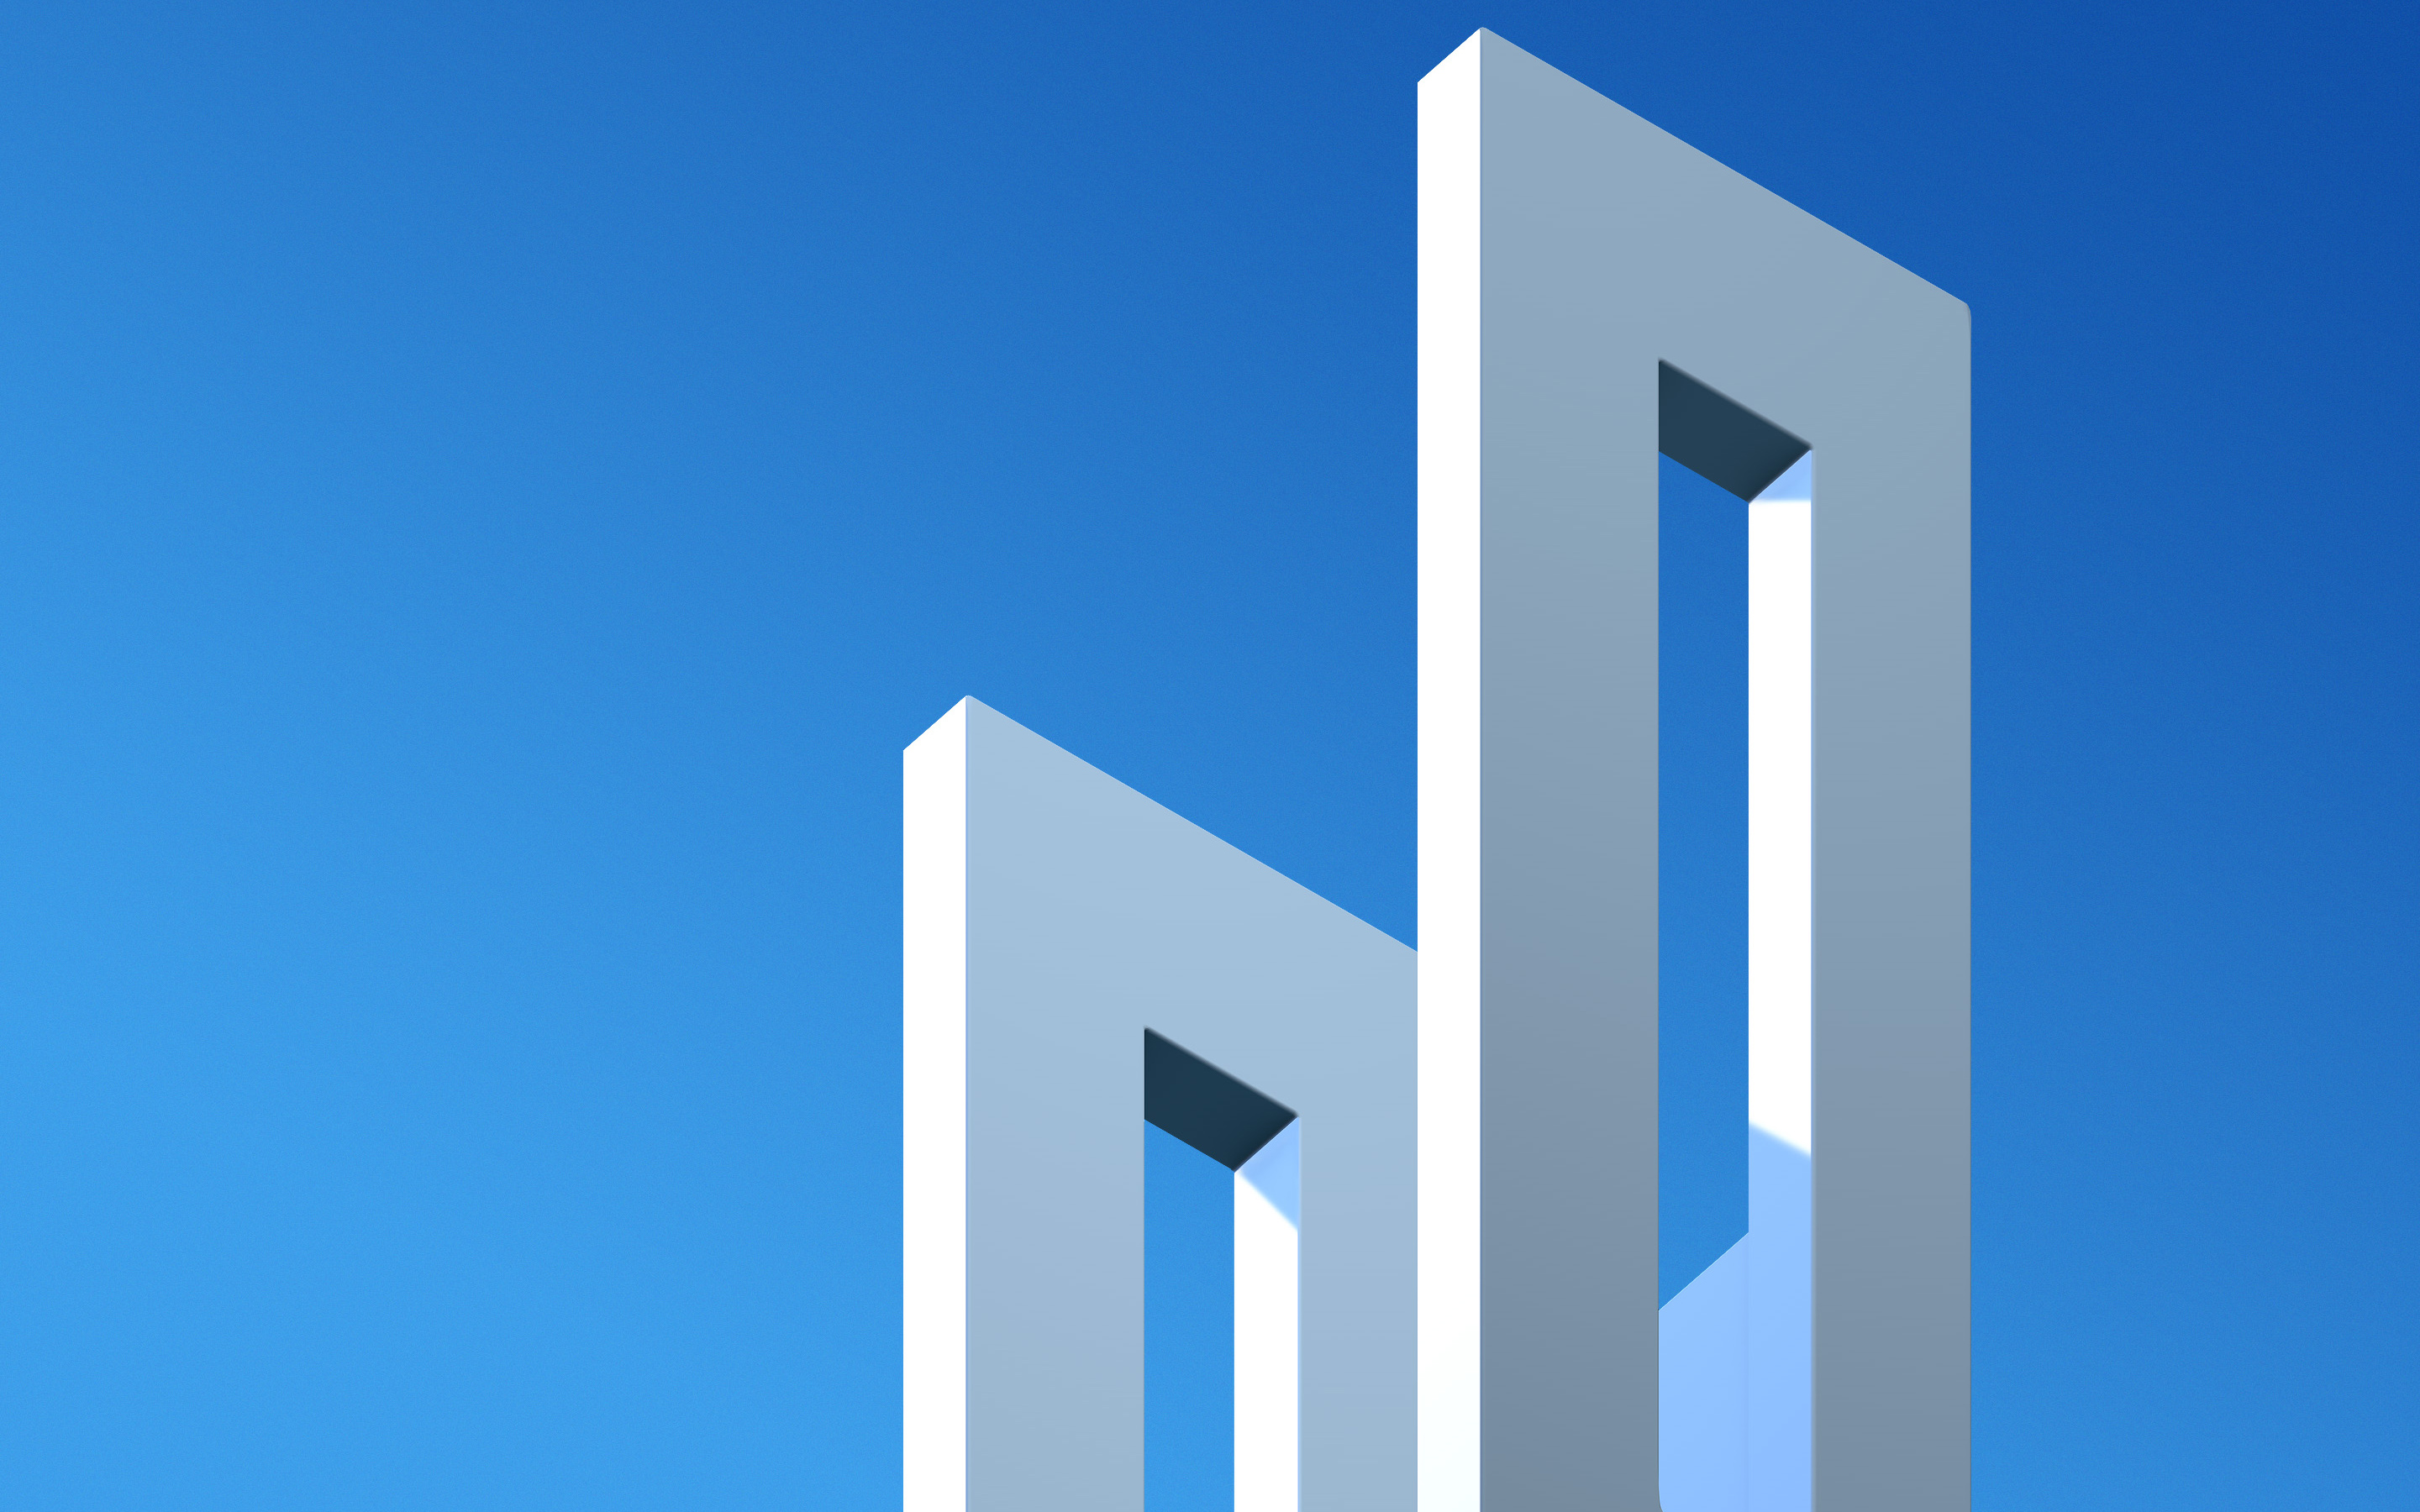 Minimal Architecture Wallpapers